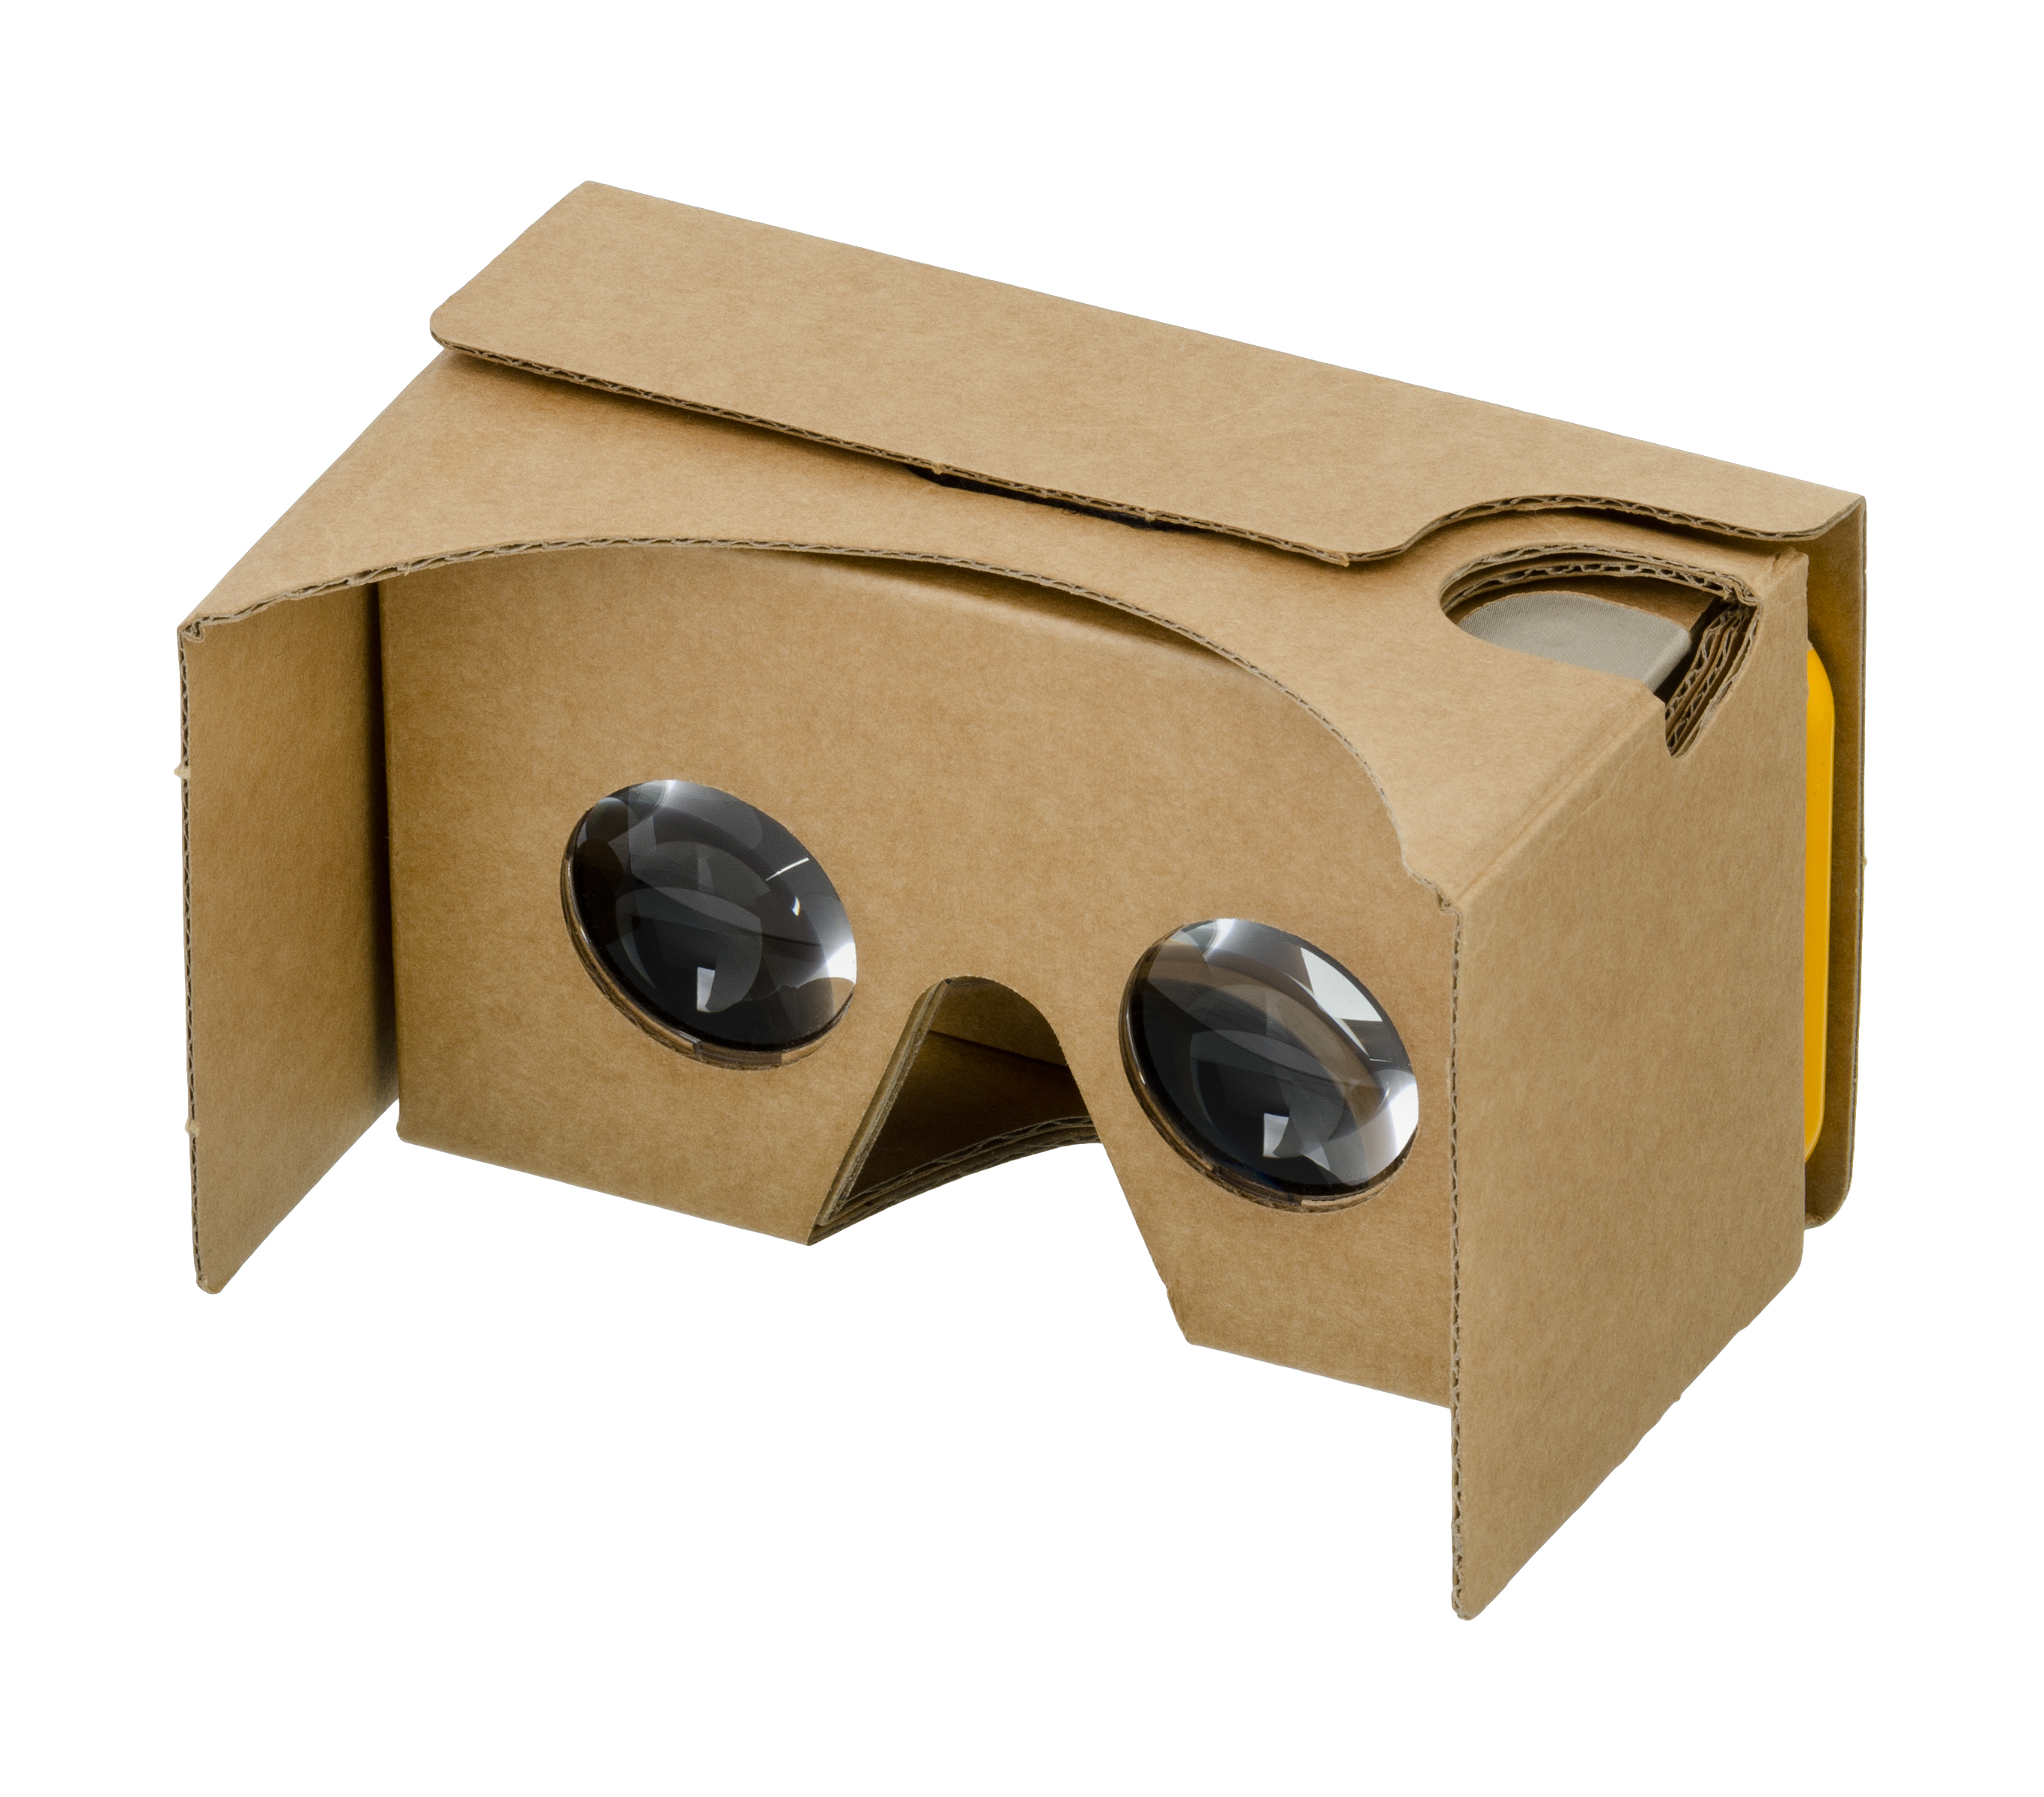 Cardboard VR headset, shown assembled and with a phone (iPhone 6s) in the visor slot. Made as a cheap, open standard by Google to encourage use and development